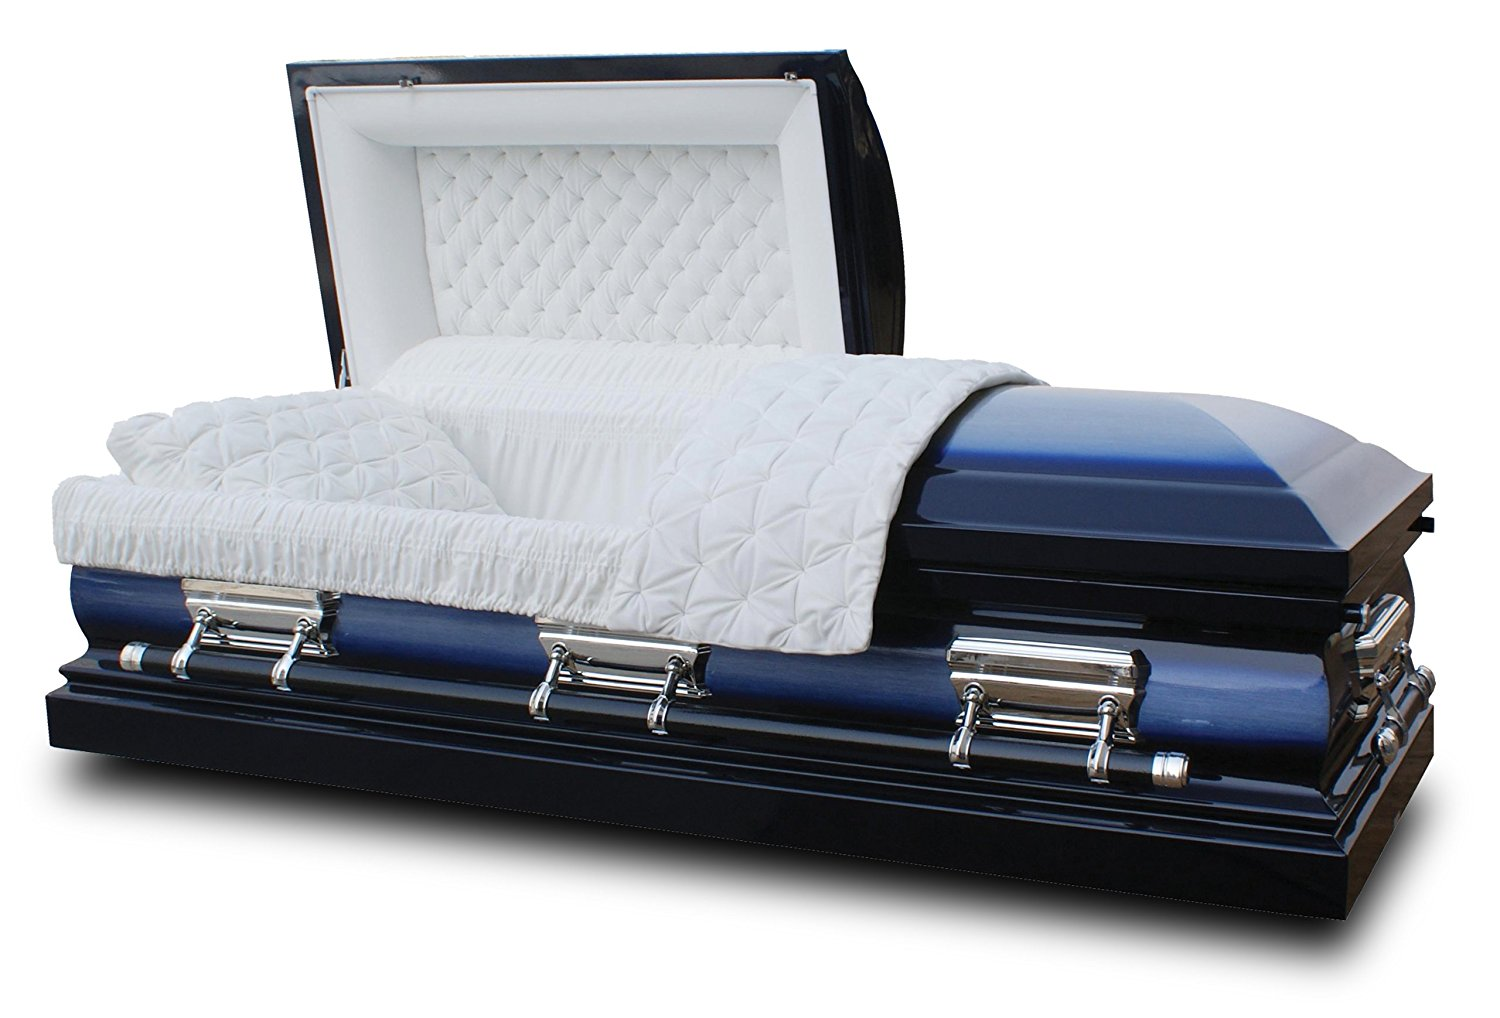 Midnight Blue Casket Coffin